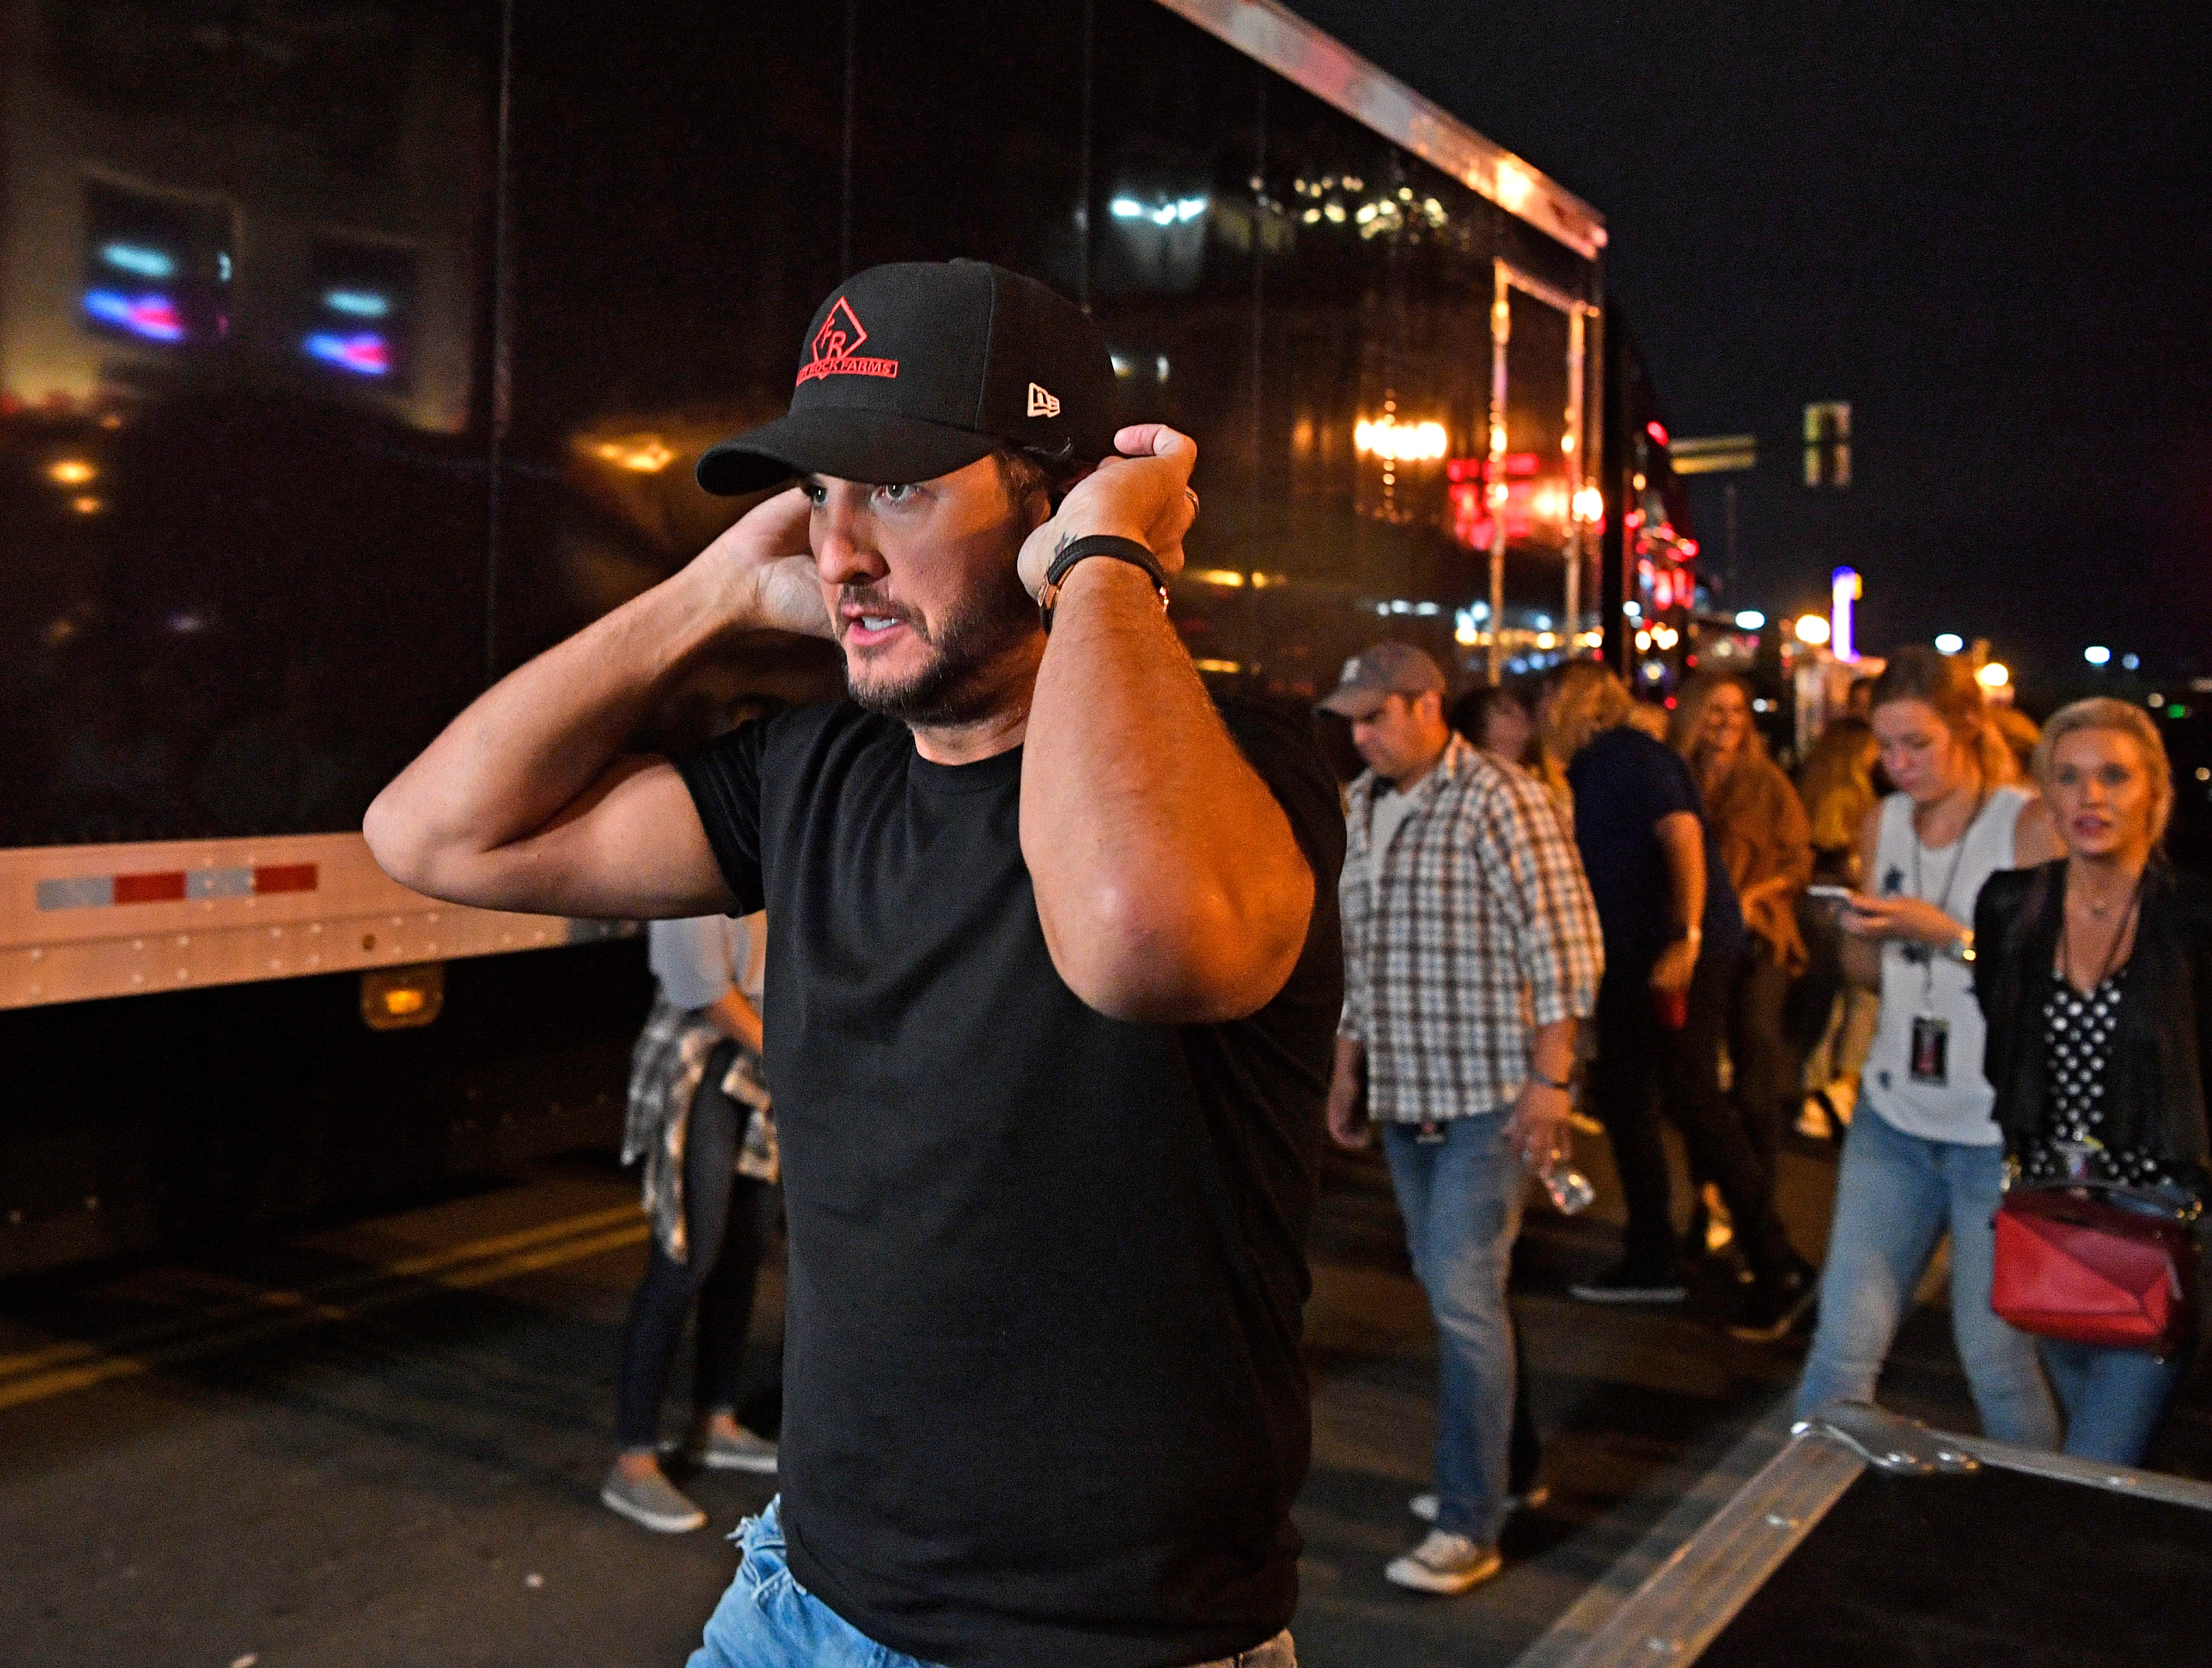 Luke Bryan prepares to go on stage and perform a concert for fans in front of his new bar Luke's 32 Bridge at 3rd and Broadway Monday Sept. 10, 2018, in Nashville, Tenn.